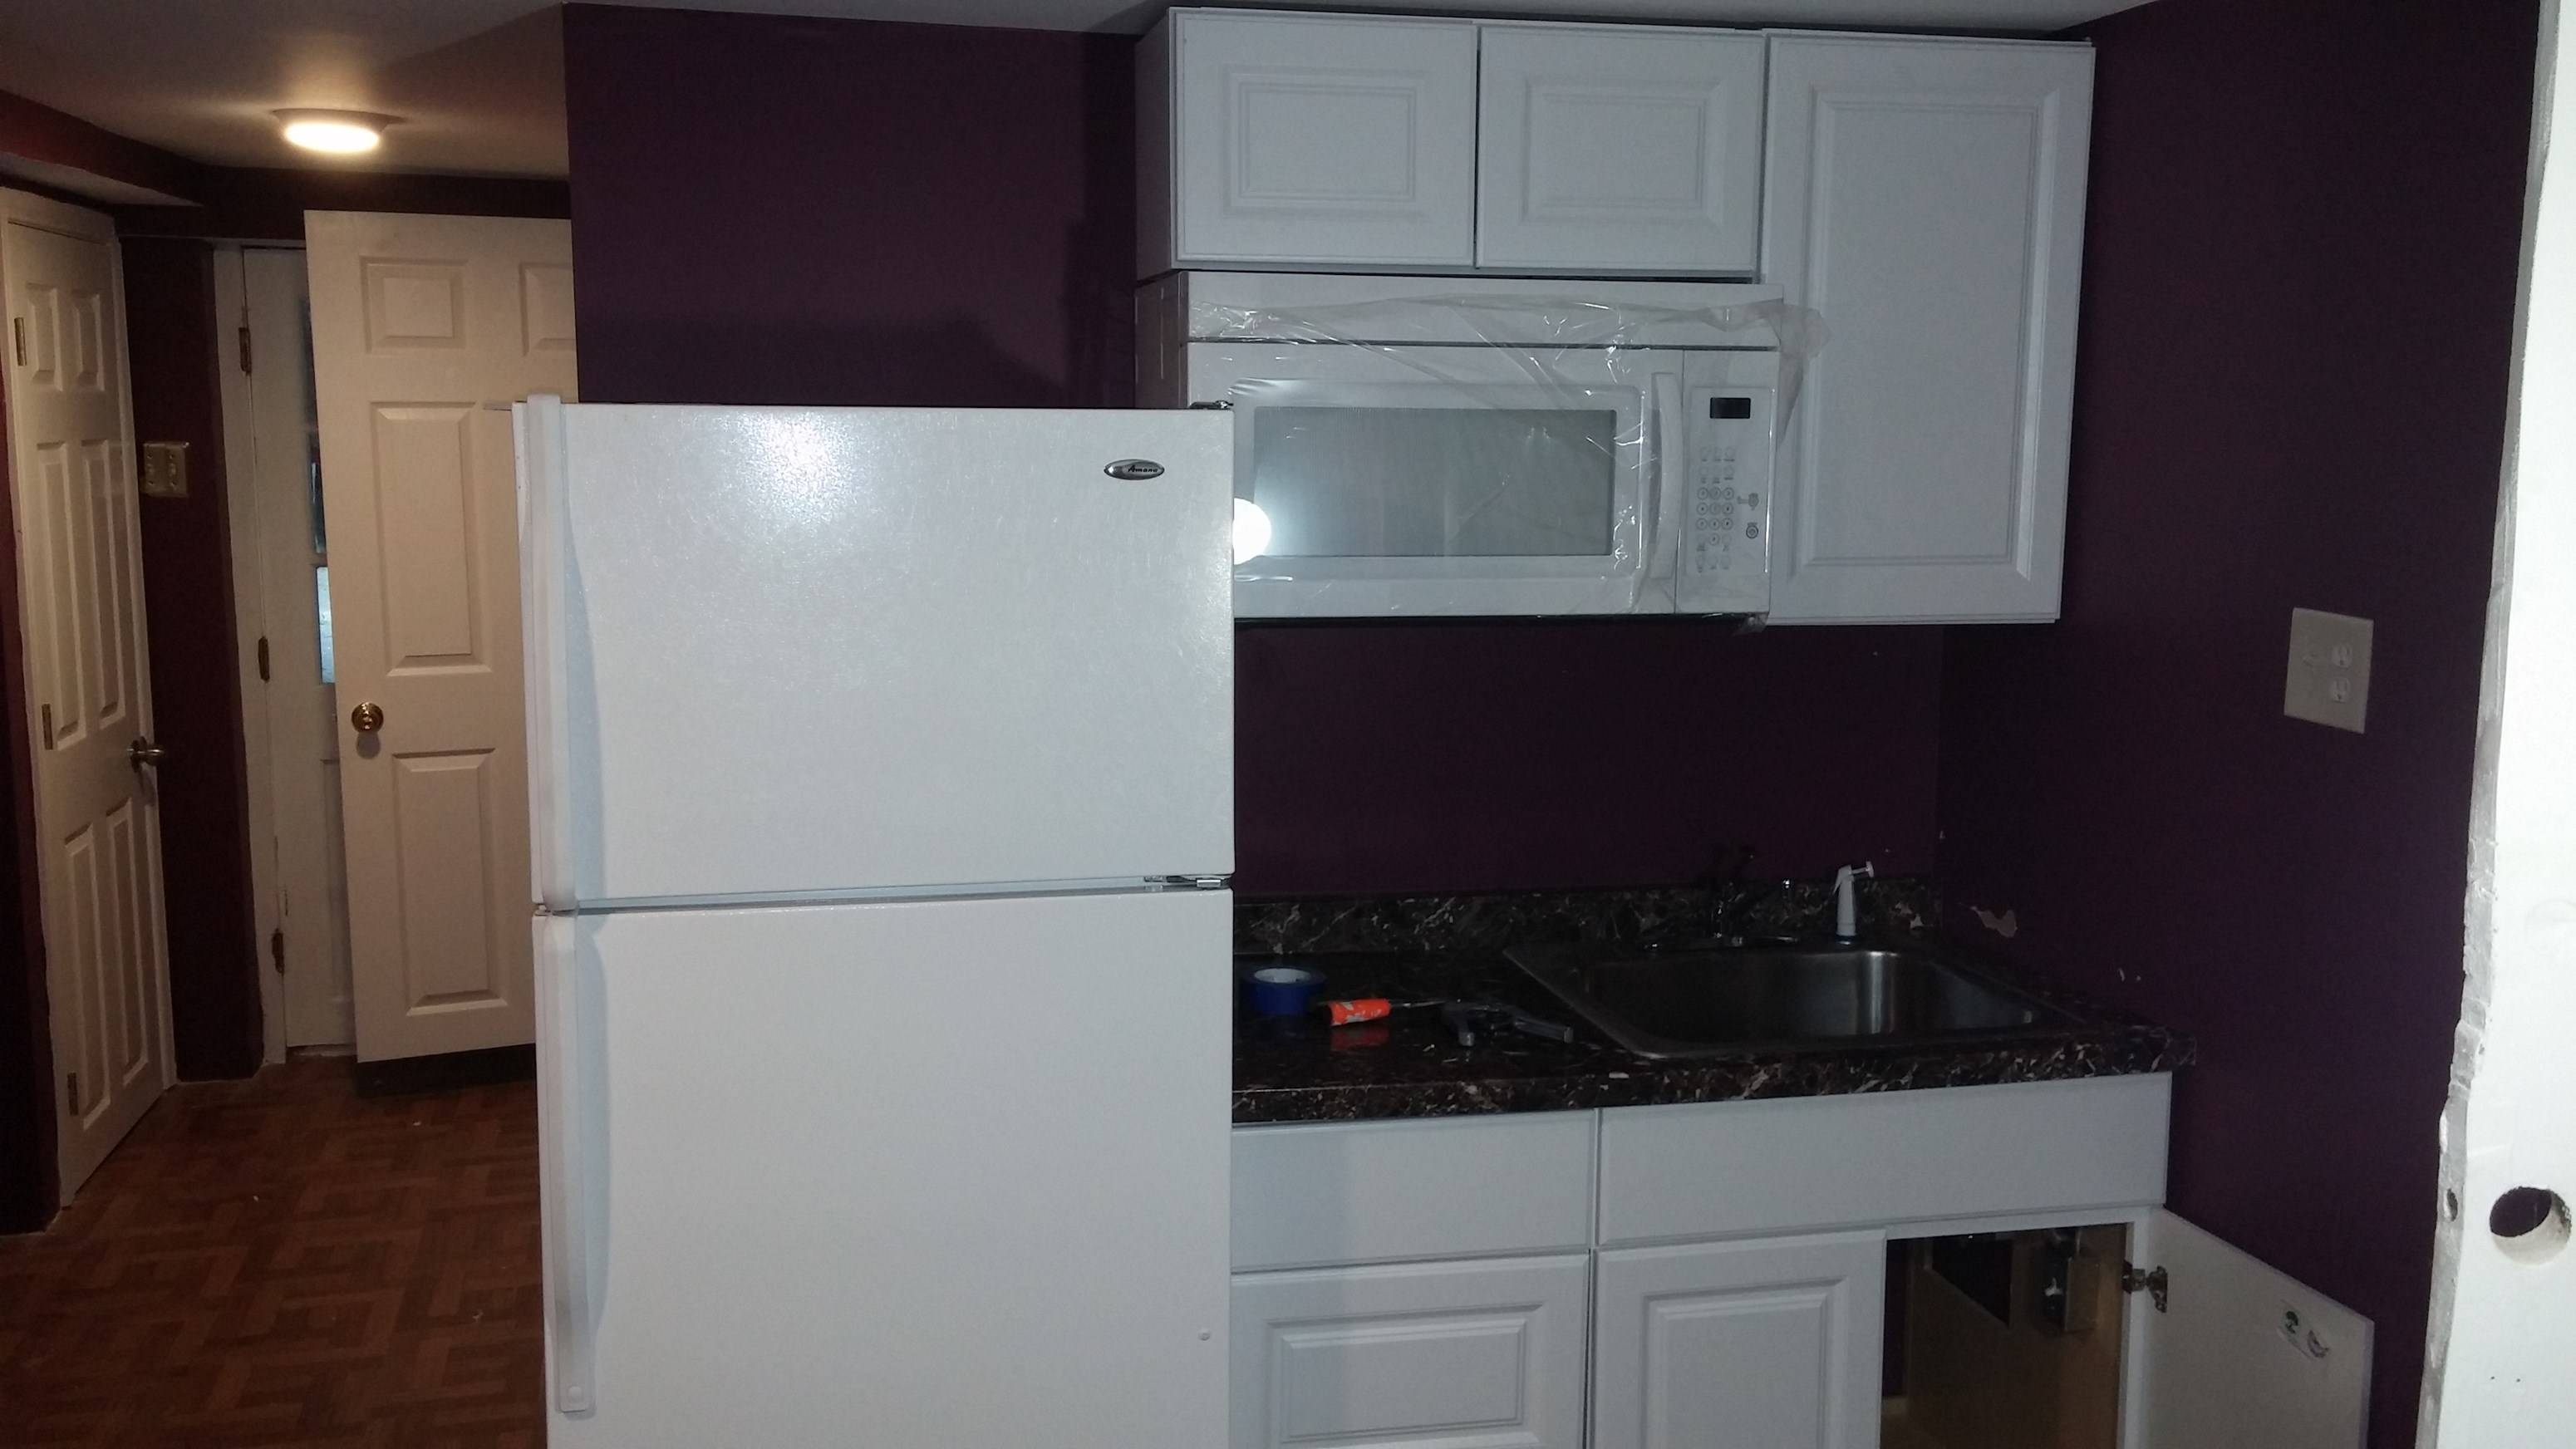 Efficiency Apartments In Germantown For Rent With Utilities